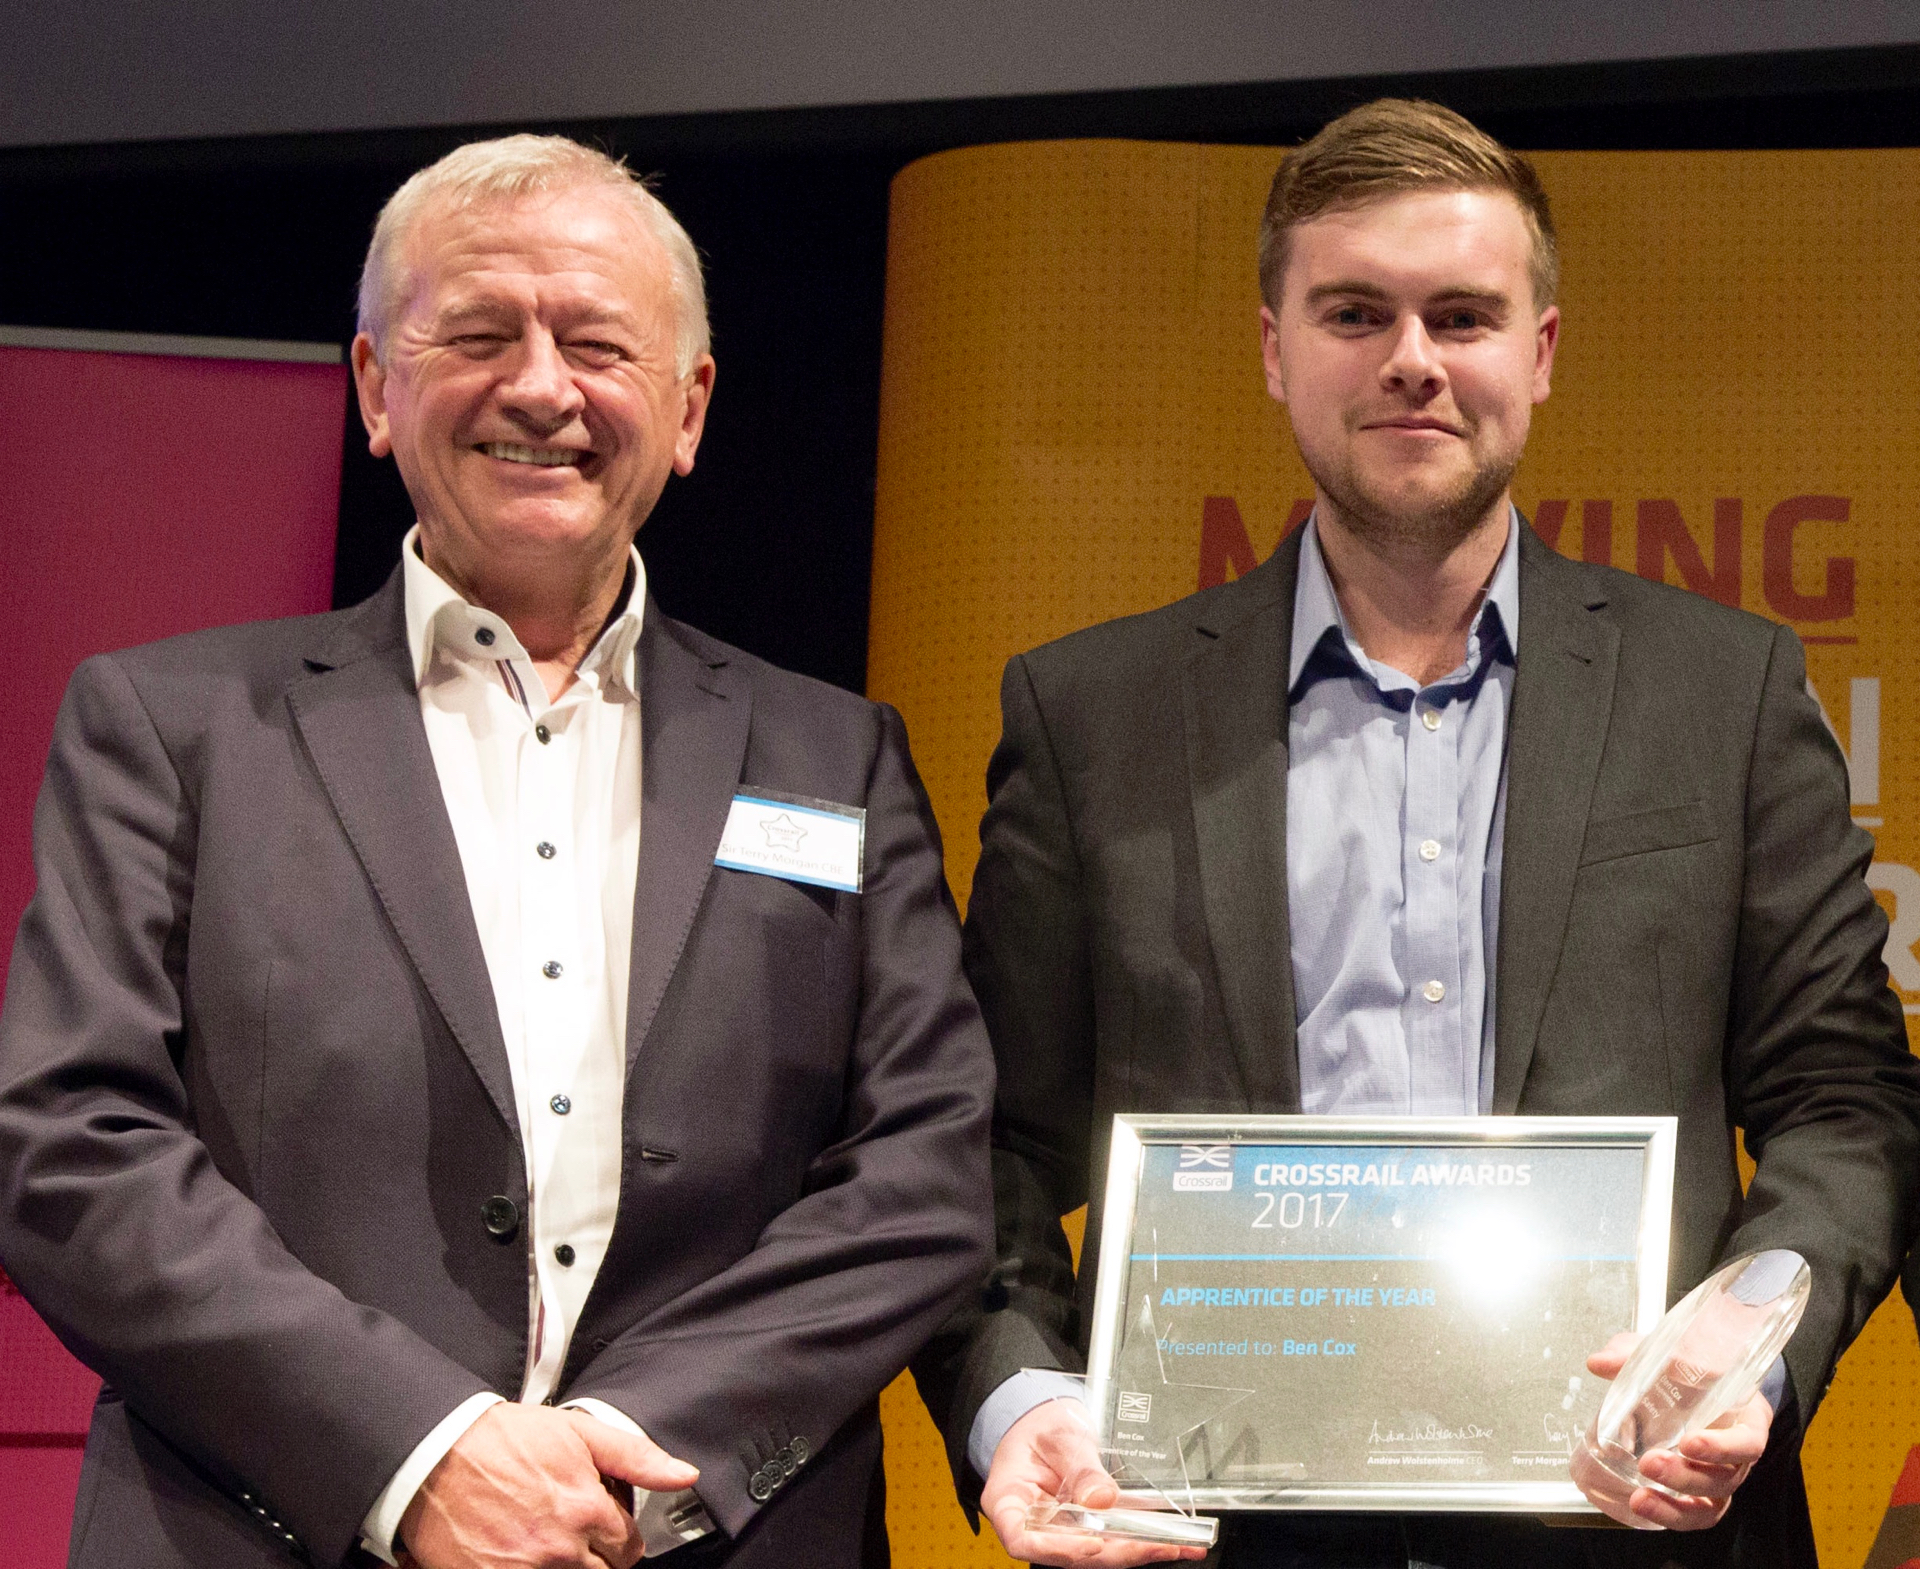 Ben Cox - Crossrail Apprentice of the Year 2017